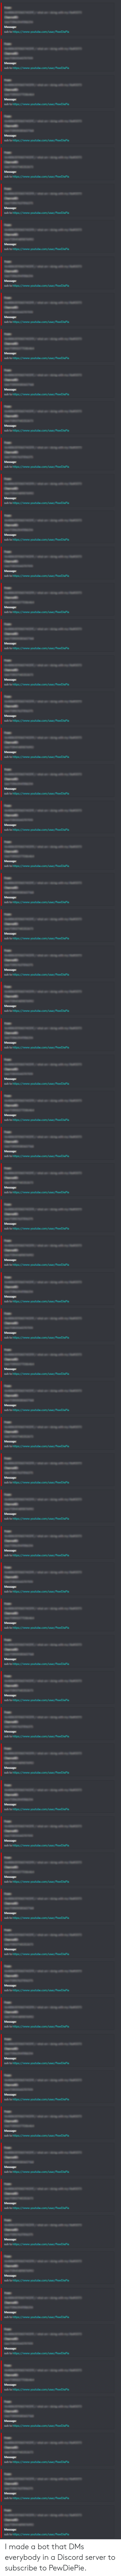 I Made a Bot That DMs Everybody in a Discord Server to